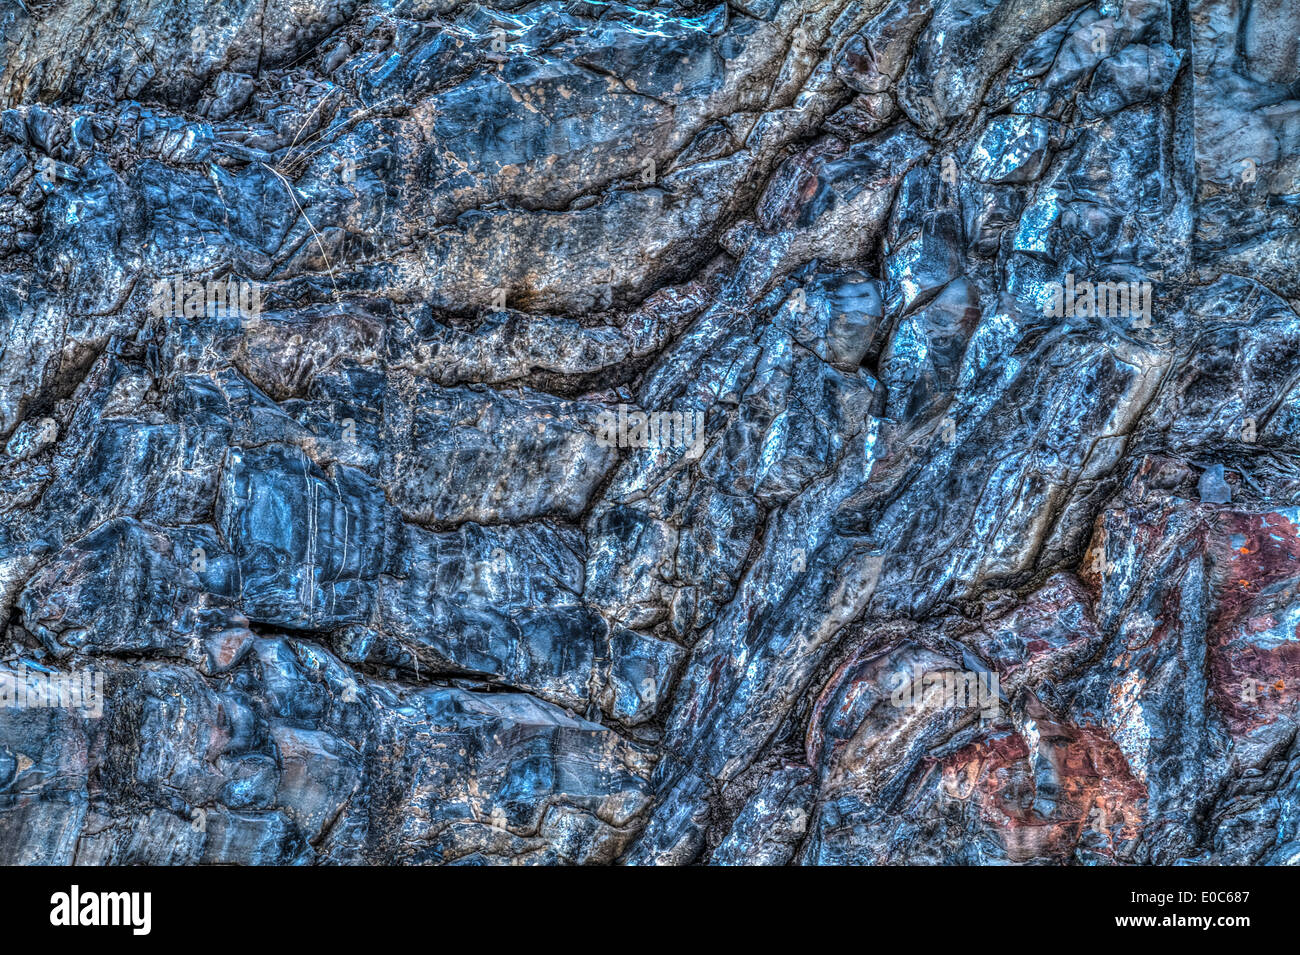 Rugged, textured, mountain rock face, full frame shot Stock Photo ...